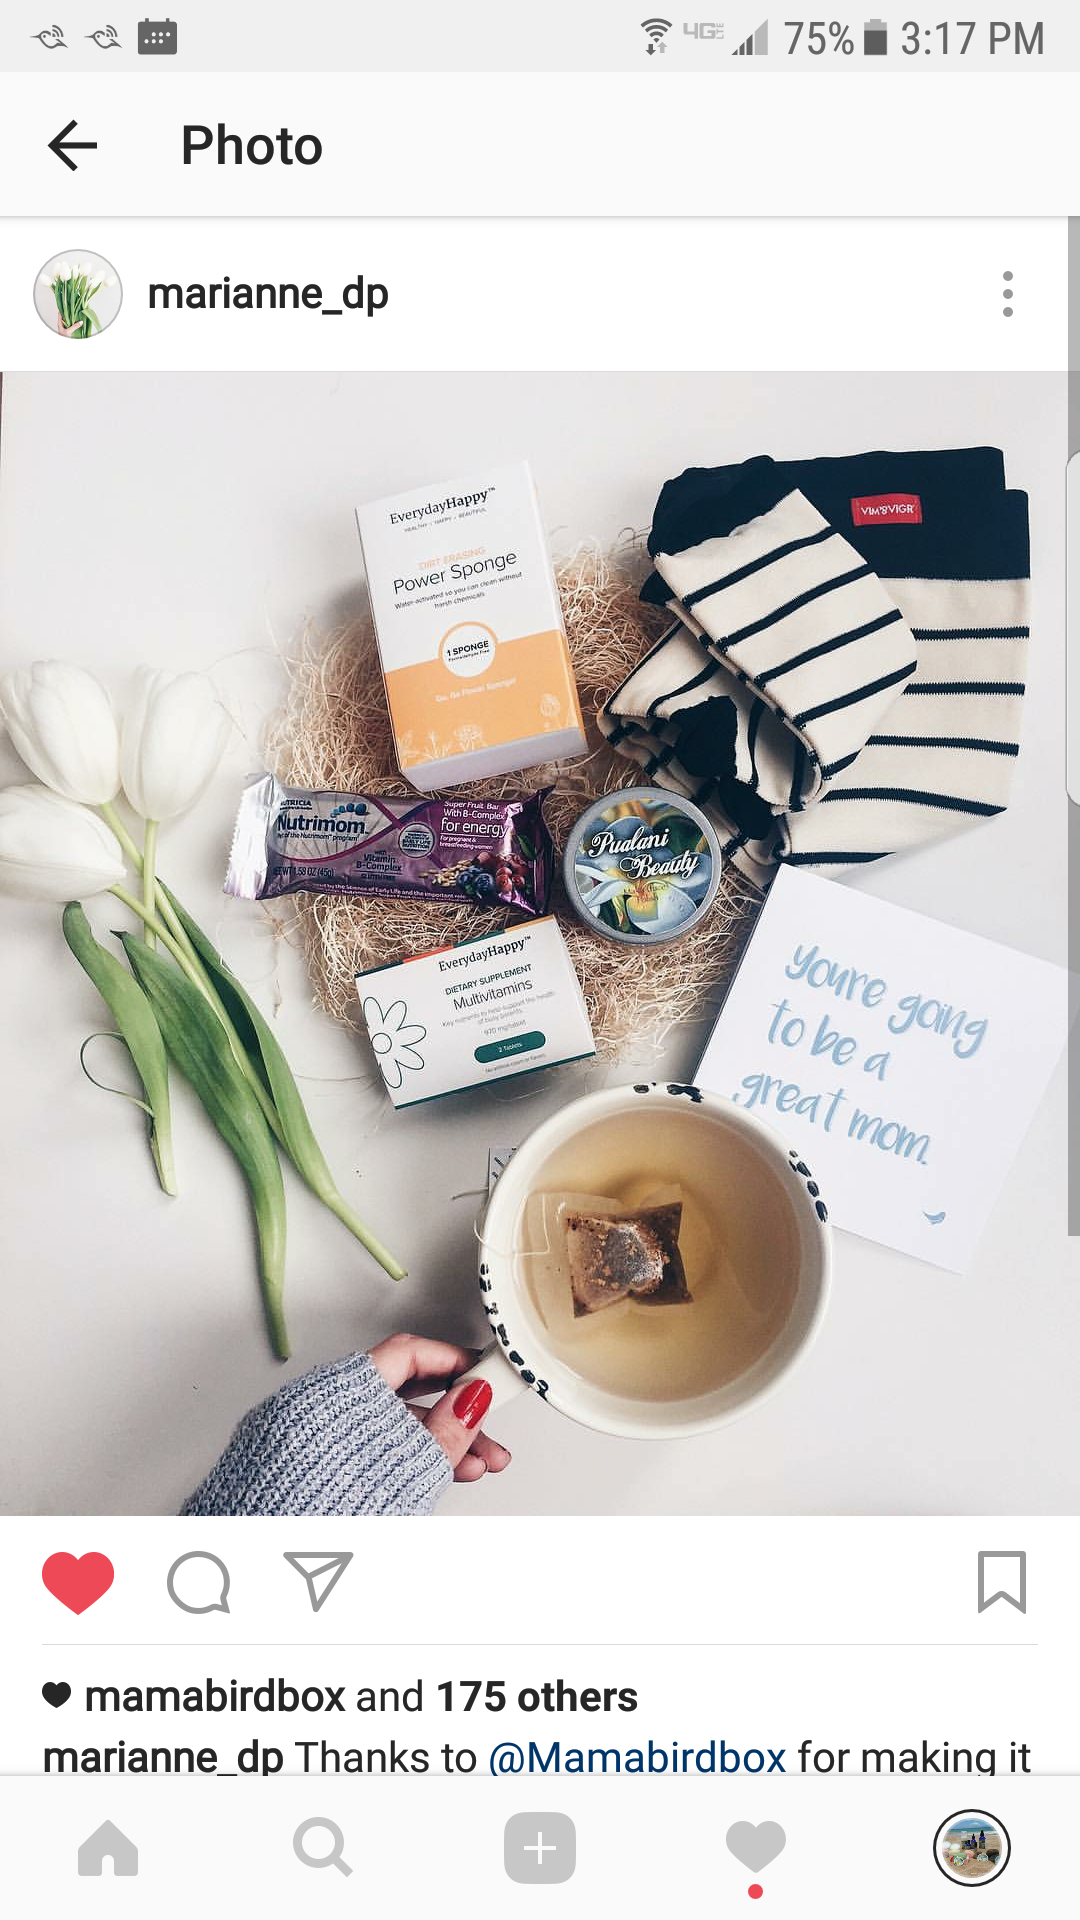 Mahalo @marianne_dp for sharing your Mamabirdbox with your followers, which includes our Kona coffee face scrub!